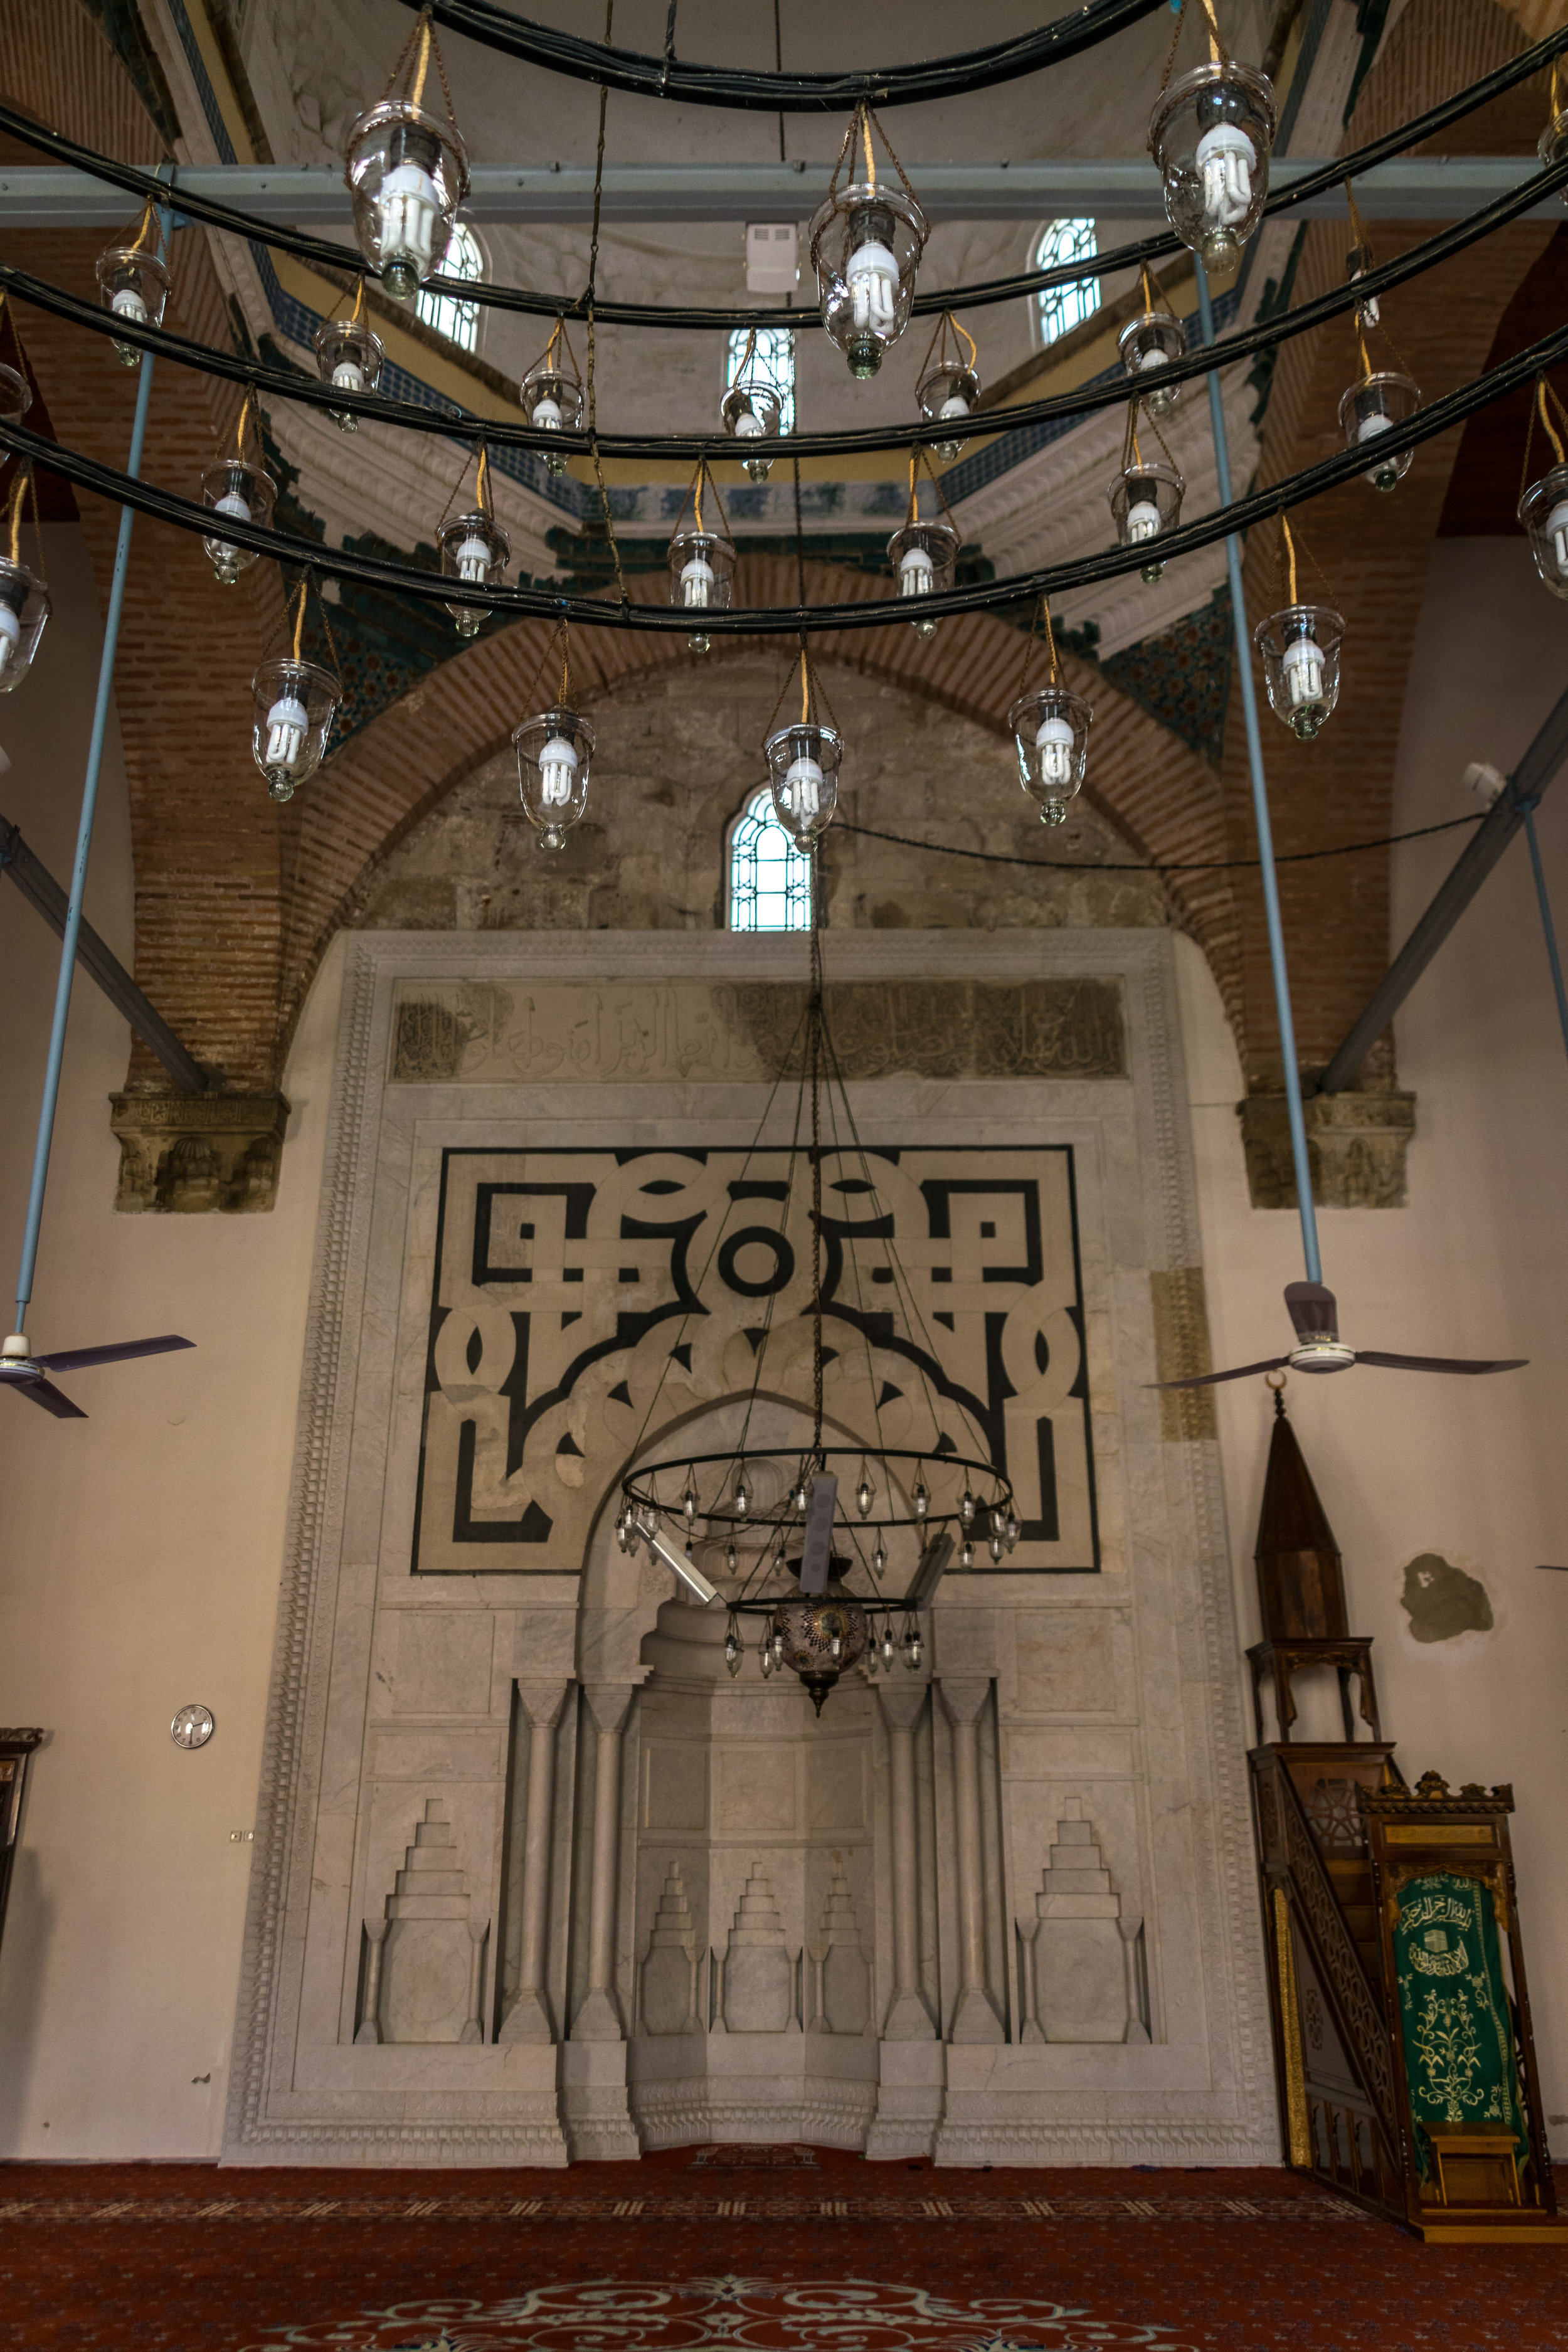 inside the Isa Bey Mosque